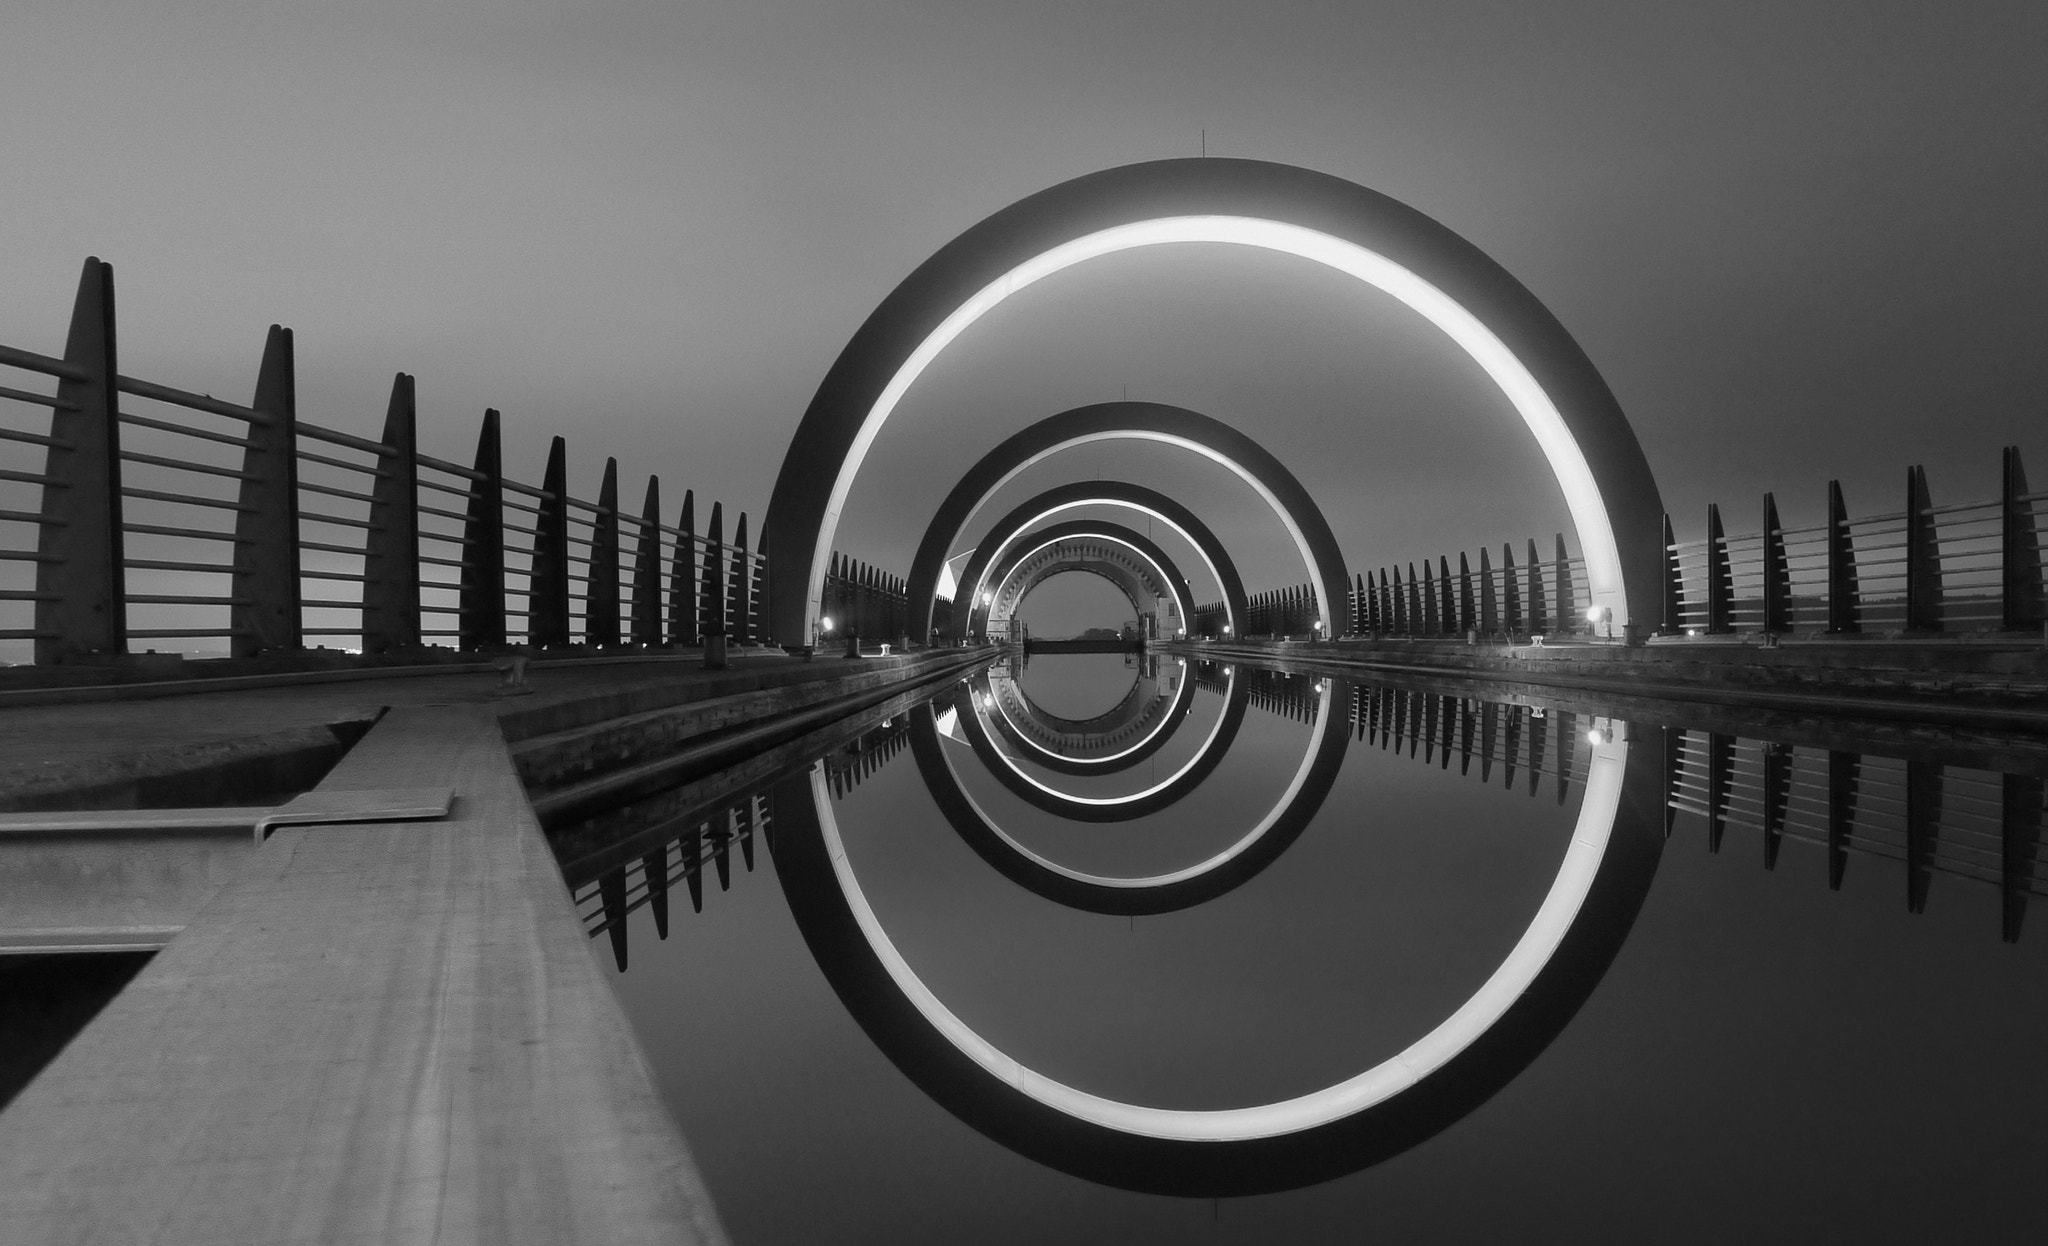 Photograph THRU THE LENS by KENNY BARKER on 500px